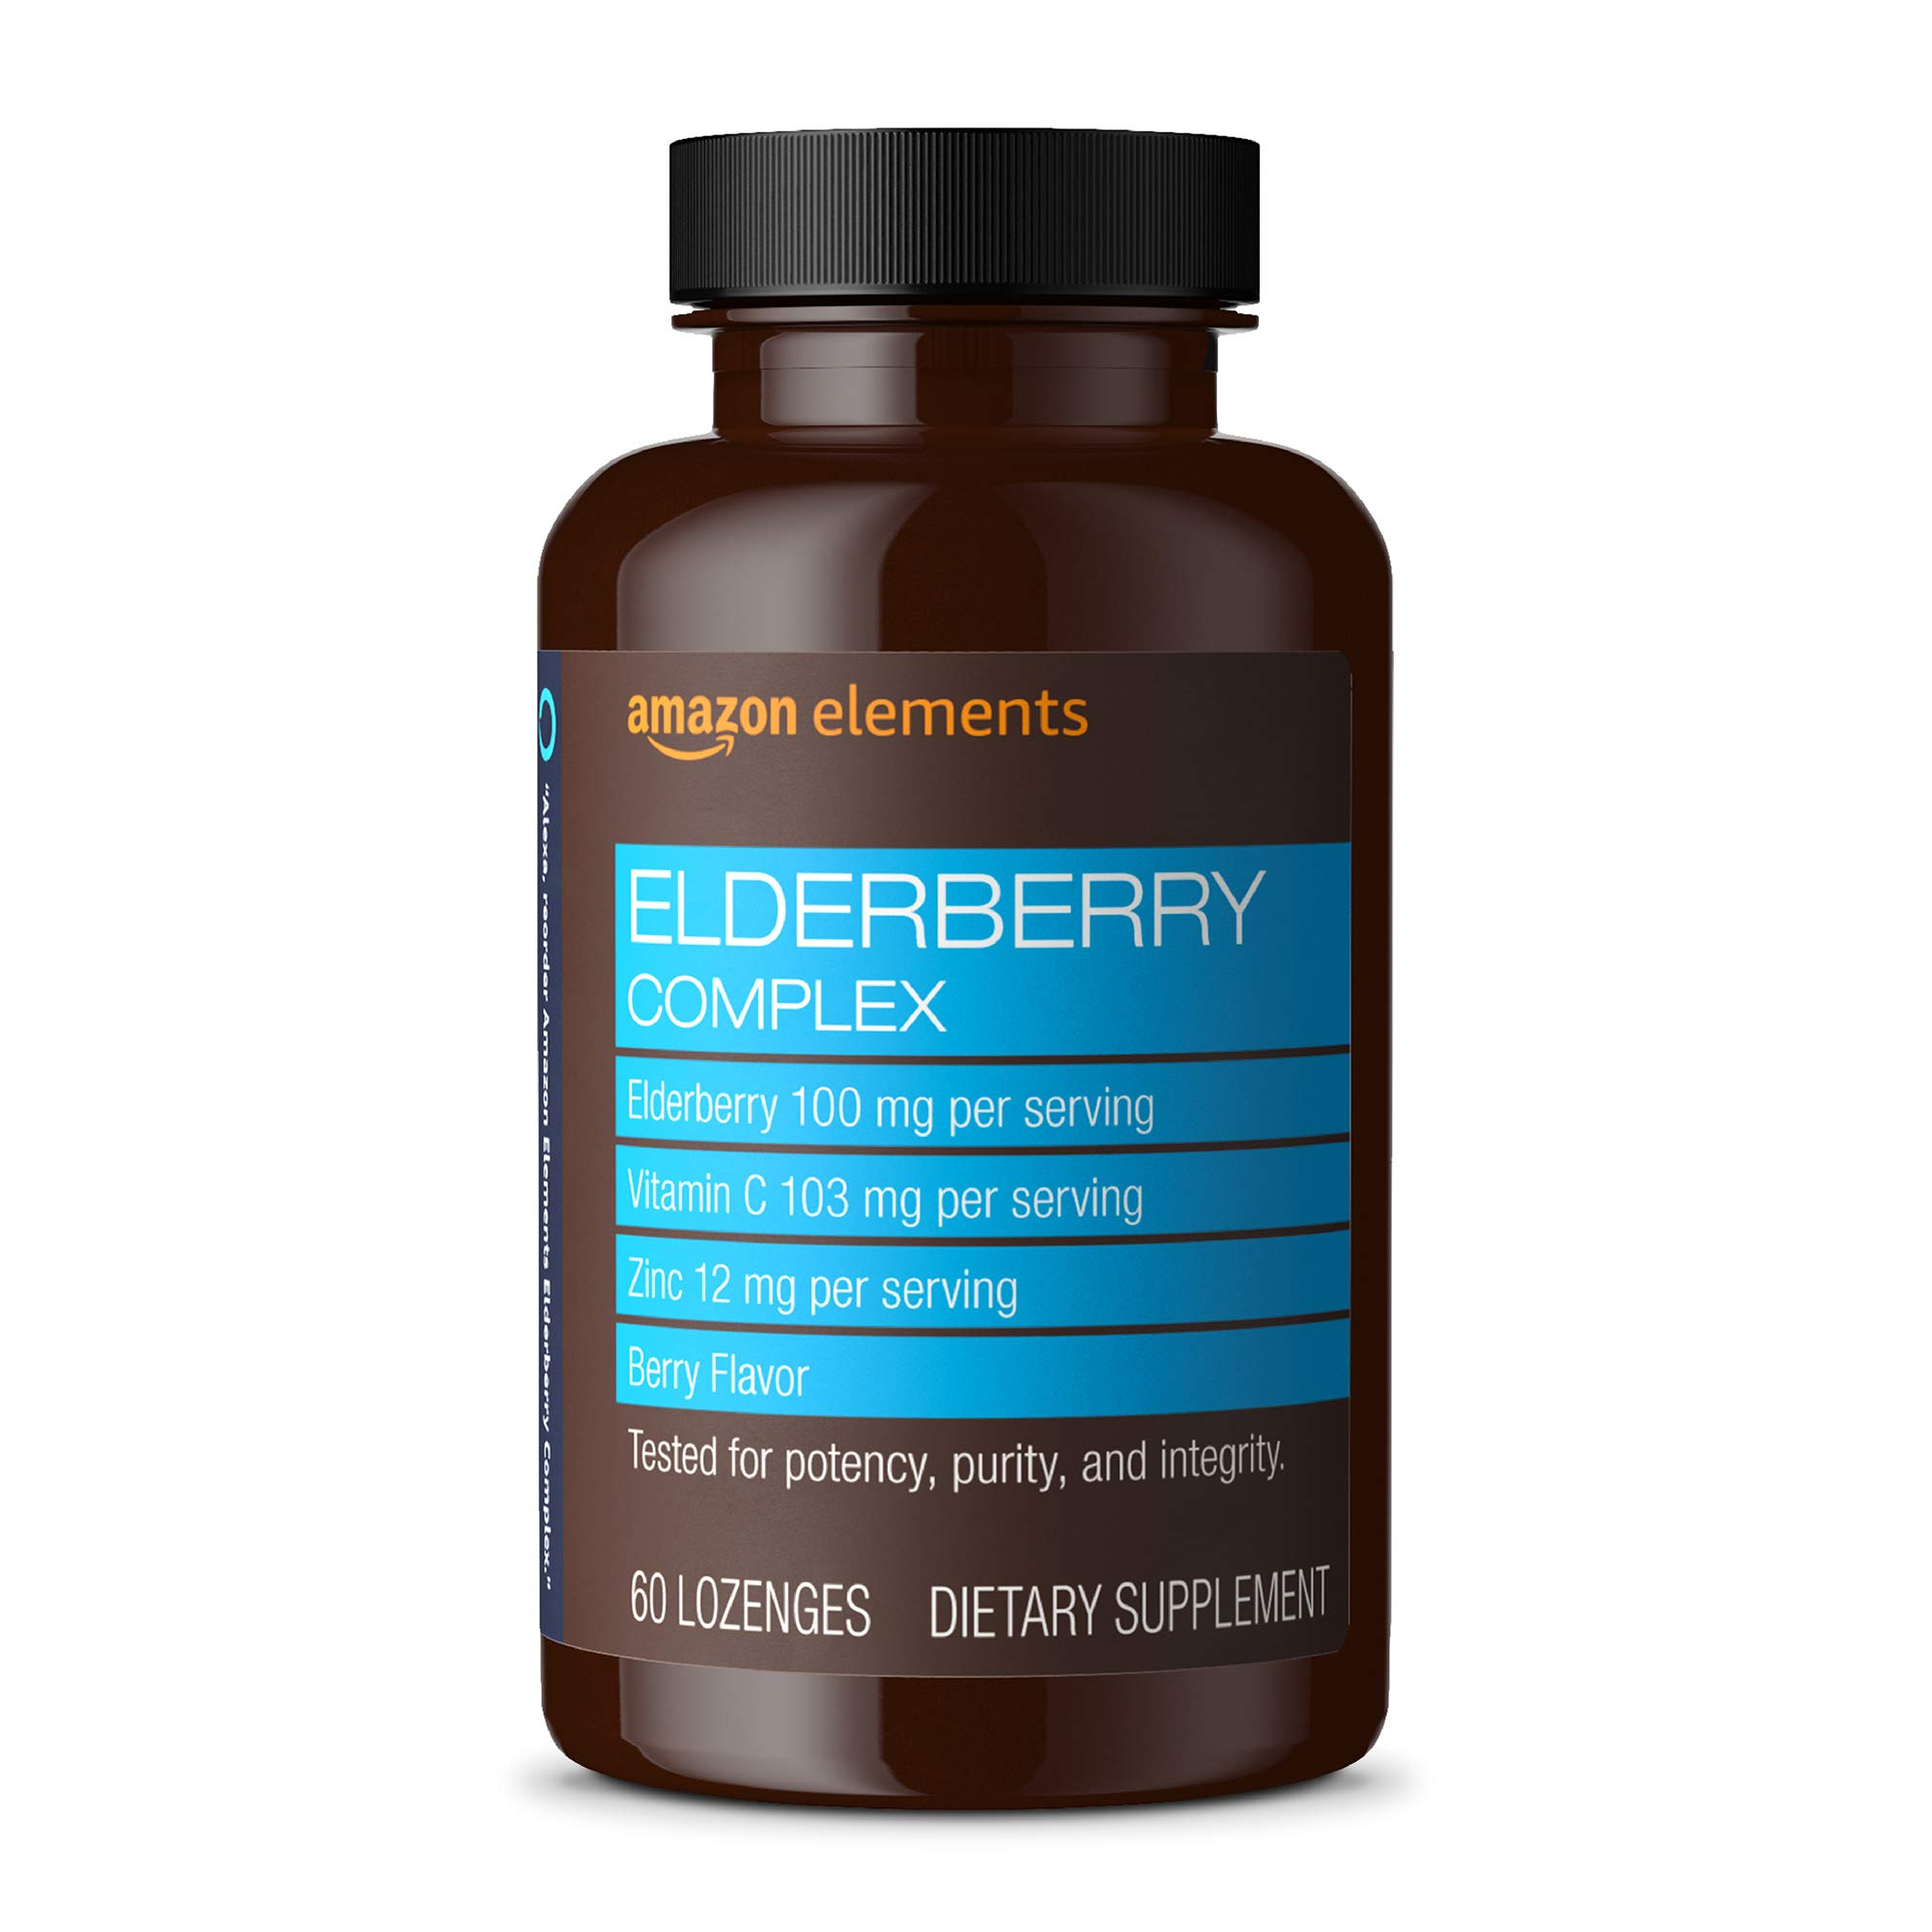 Amazon Elements Elderberry Complex, Immune System Support, 60 Berry Flavored Lozenges, Elderberry 100mg, Vitamin C 103mg, Zinc 12mg per Serving (Packaging may vary)